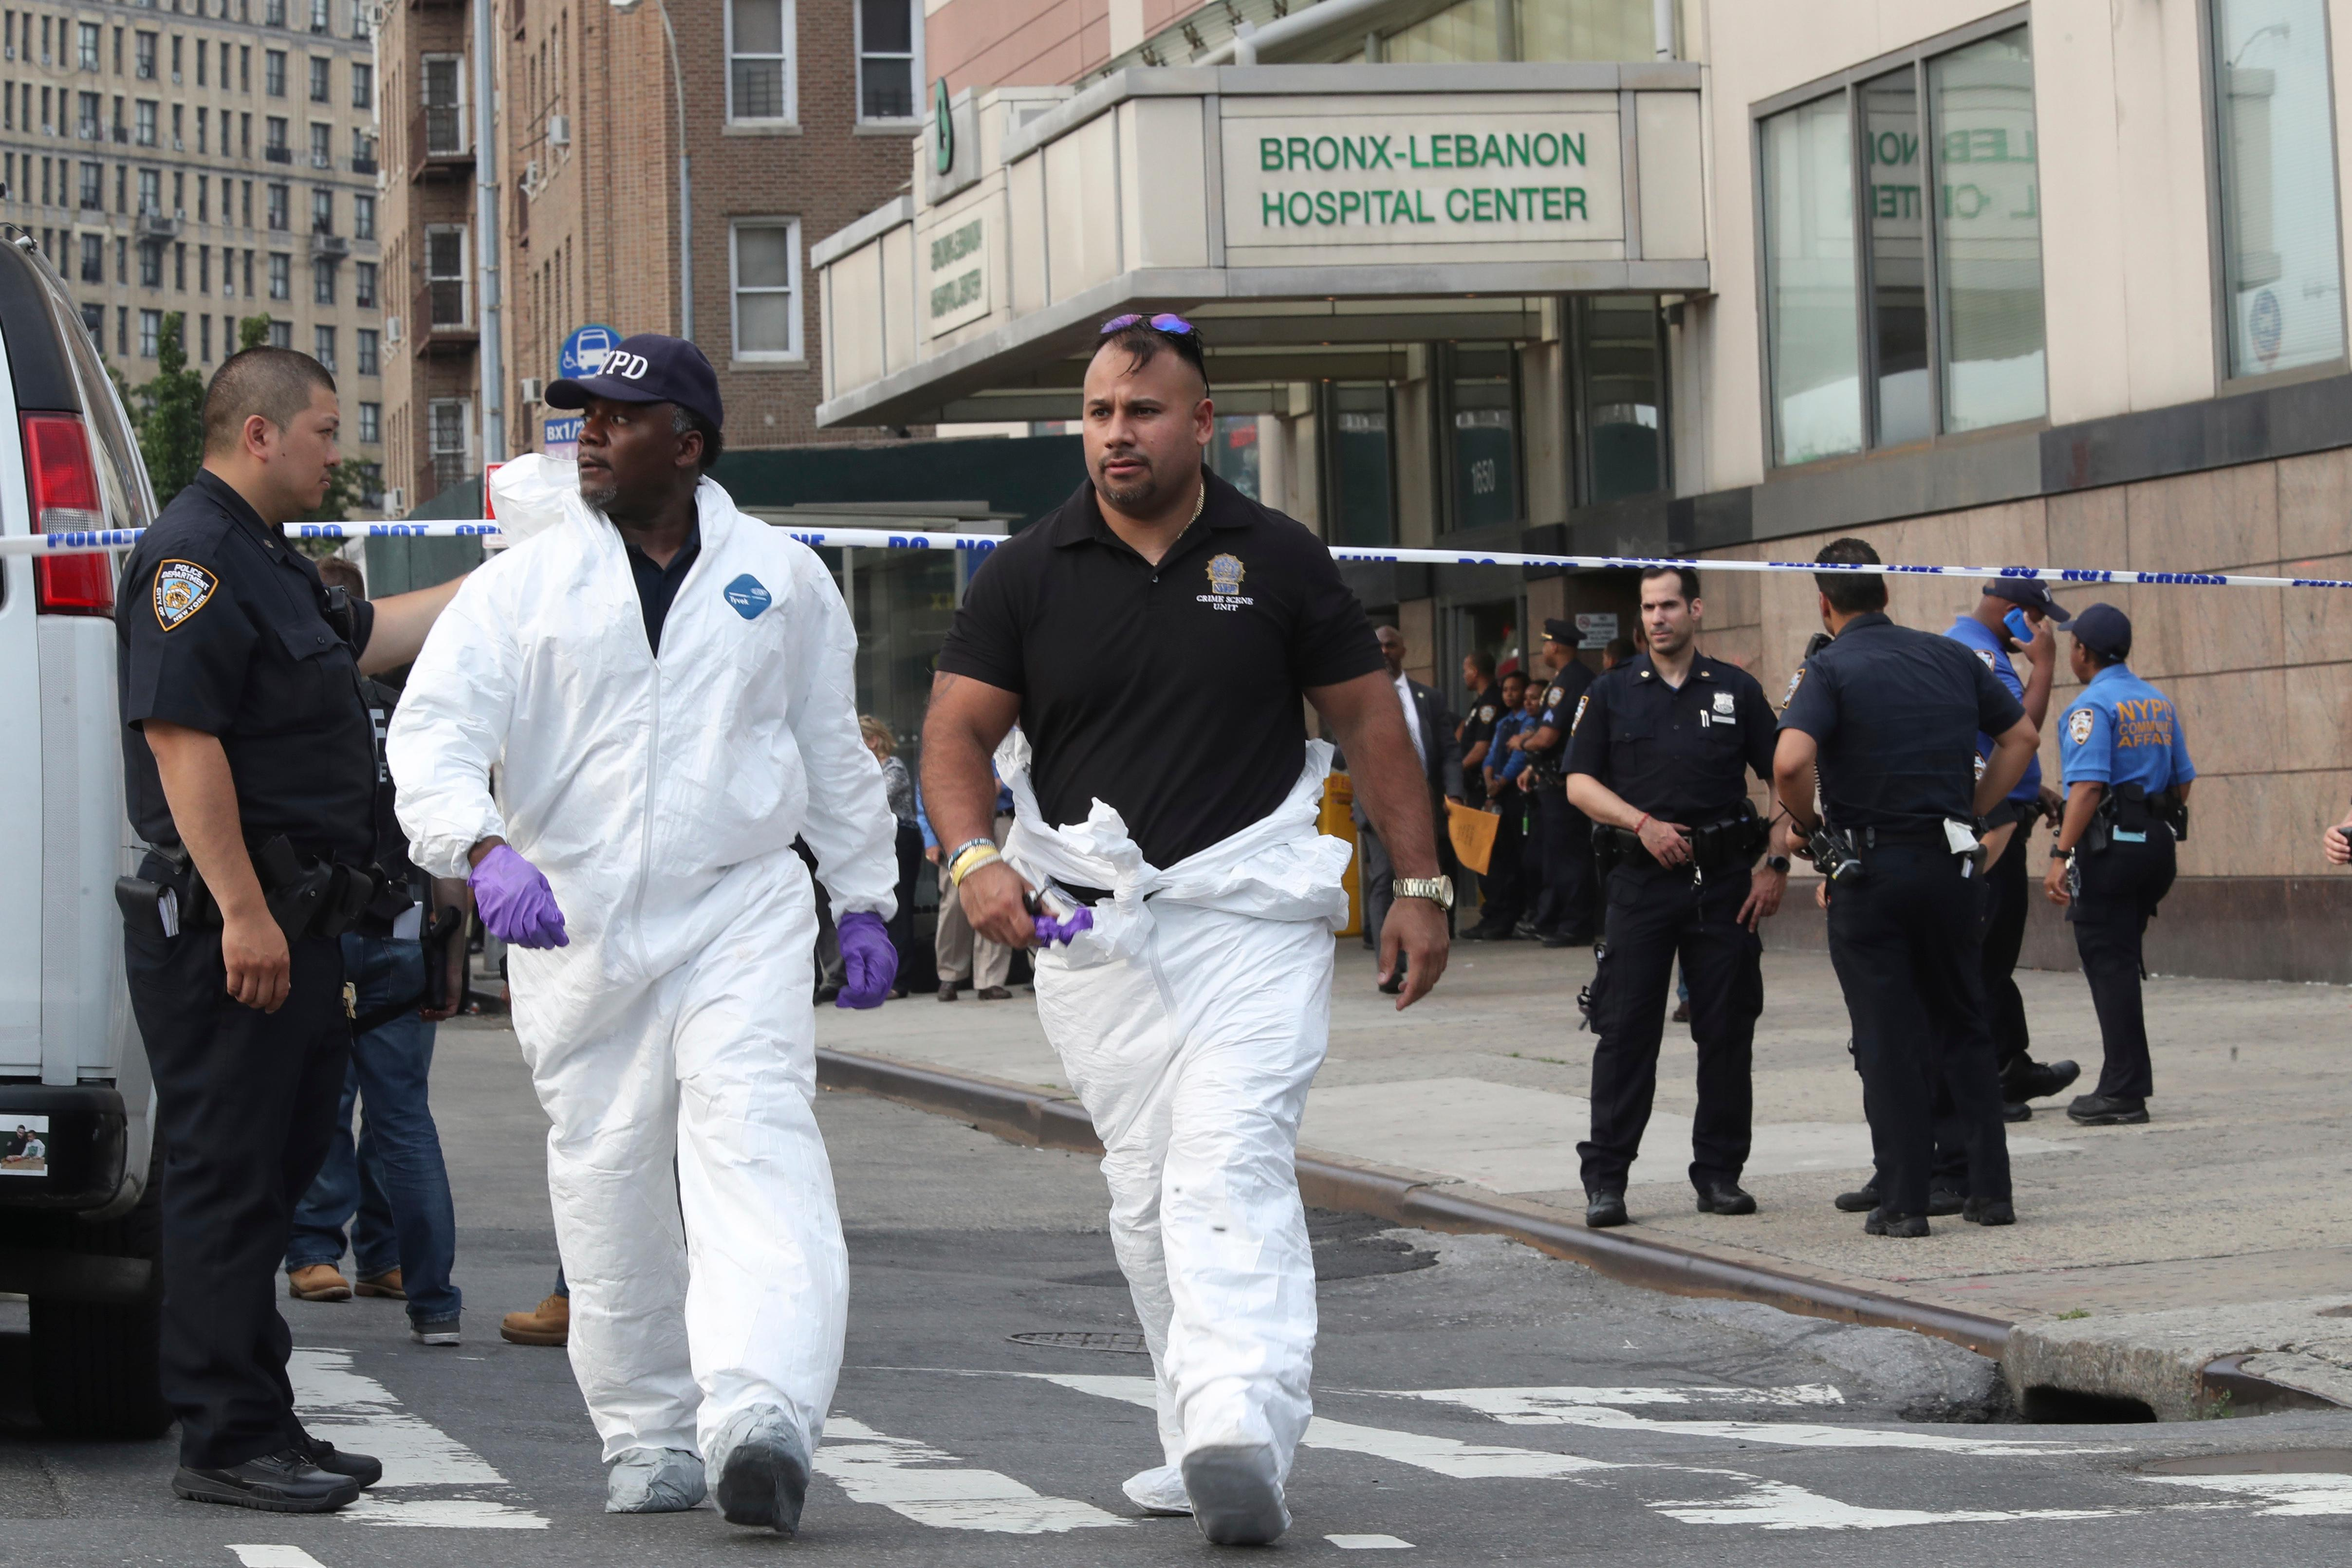 Police officers with the Forensics Unit leave Bronx Lebanon Hospital after a gunman opened fire and then took his own life there, Friday, June 30, 2017, in New York. The gunman, identified as Dr. Henry Bello who used to work at the hospital, returned with a rifle hidden under his white lab coat, law enforcement officials said. (AP Photo/Mary Altaffer)